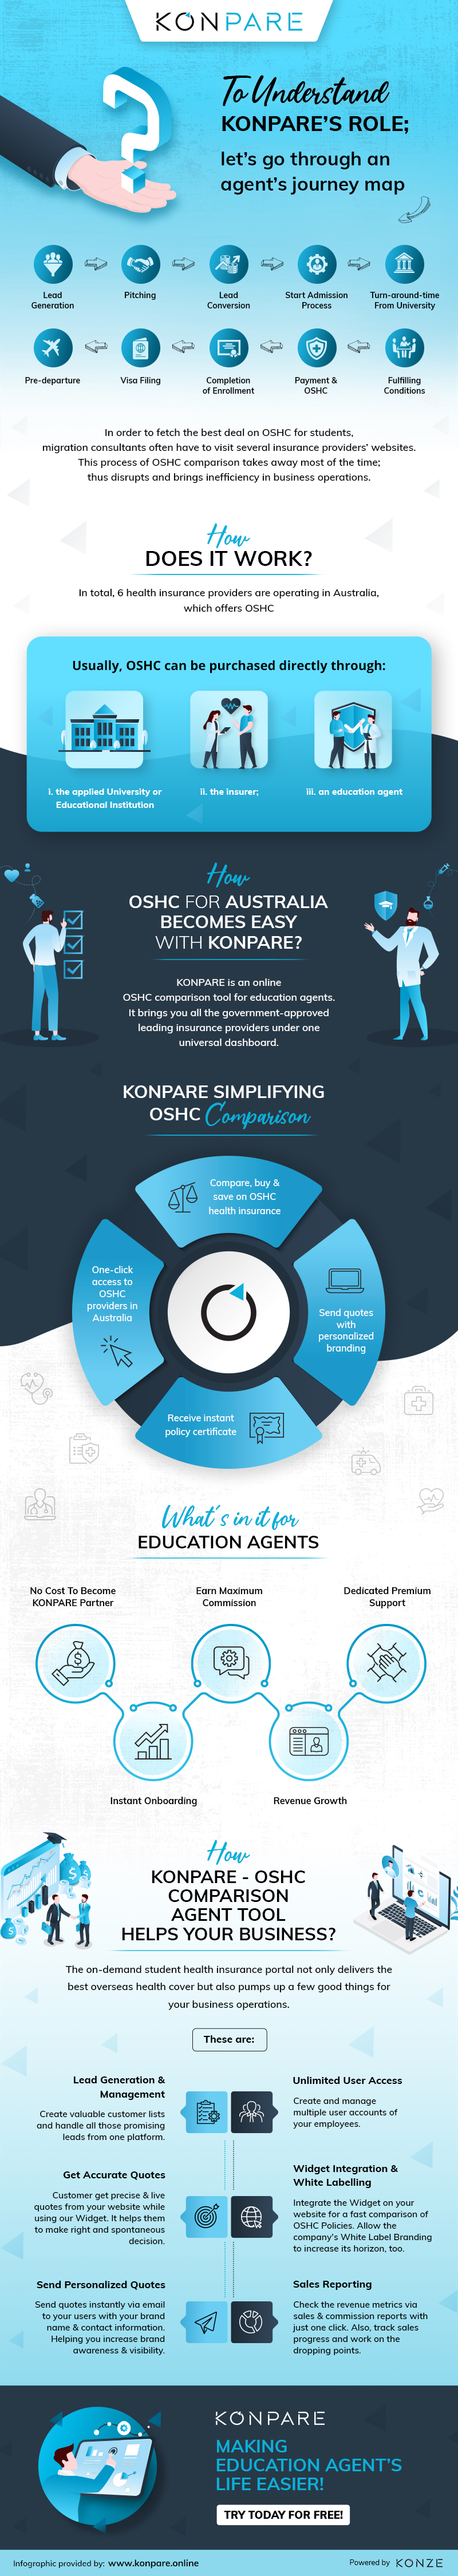 Why OSHC For Australia Is Critical & How KONPARE Plays A Major Role?